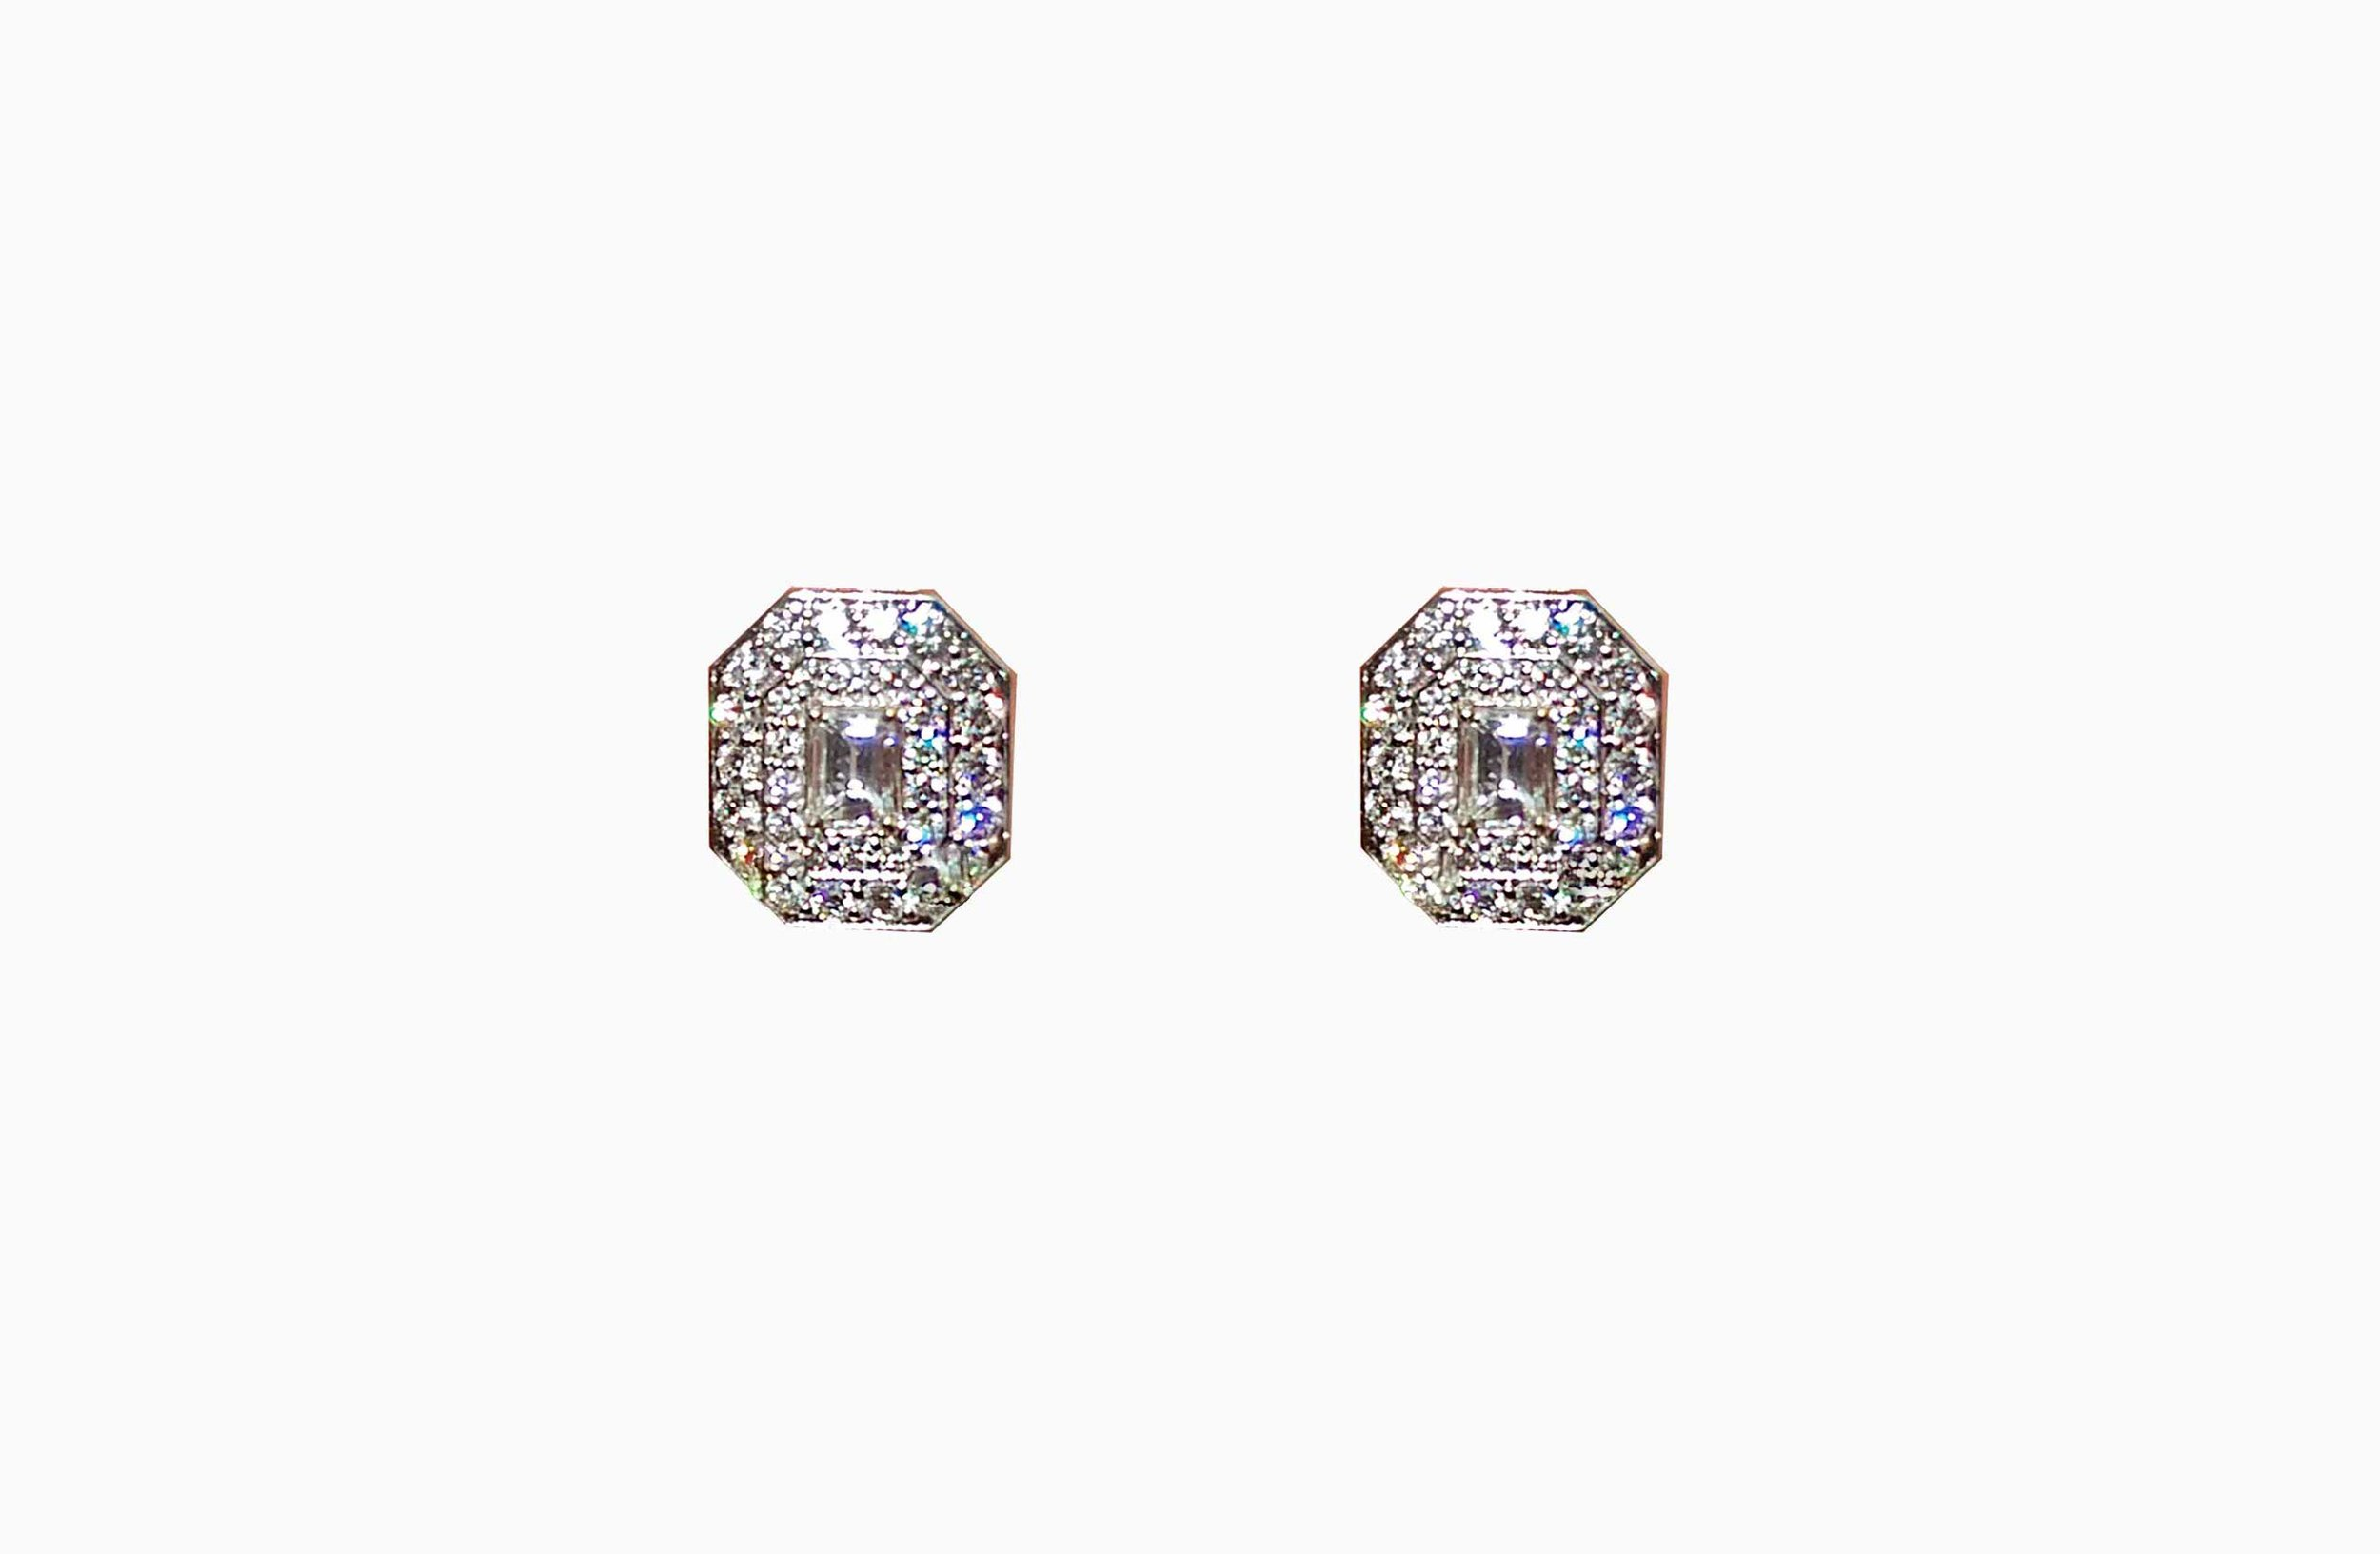 024-HauteBijouDiamondStuds-Earrings.jpg